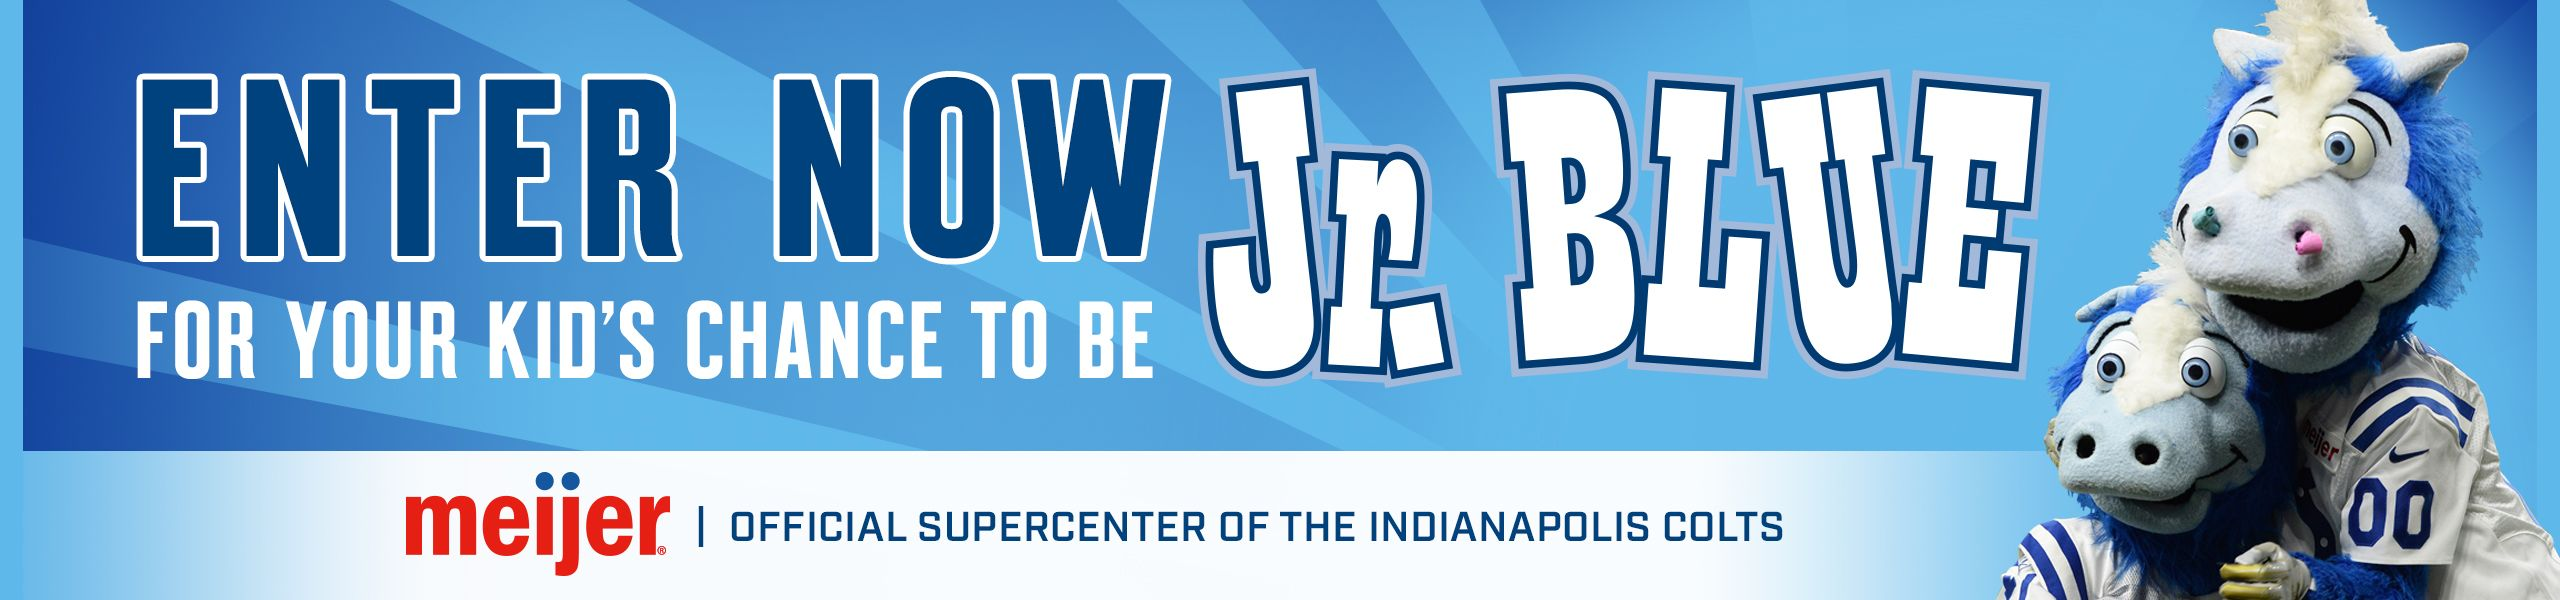 Enter Now For Your Kid's Chance To Be Jr. Blue. Meijer, Official Supercenter Of The Indianapolis Colts